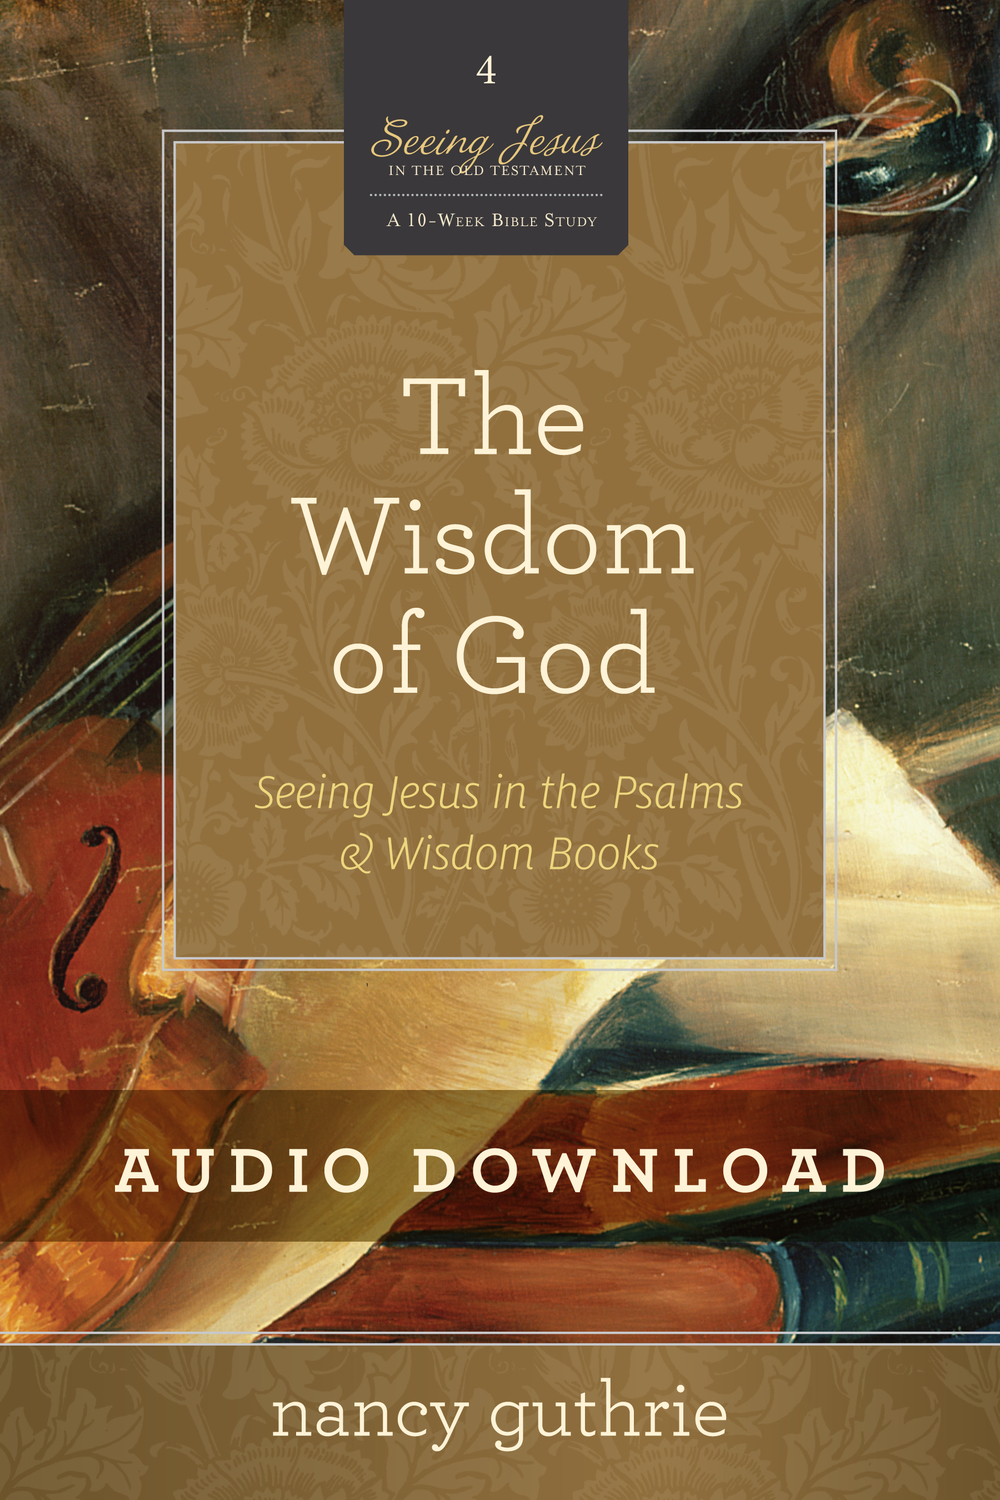 The Wisdom of God Audio Session 9 Download